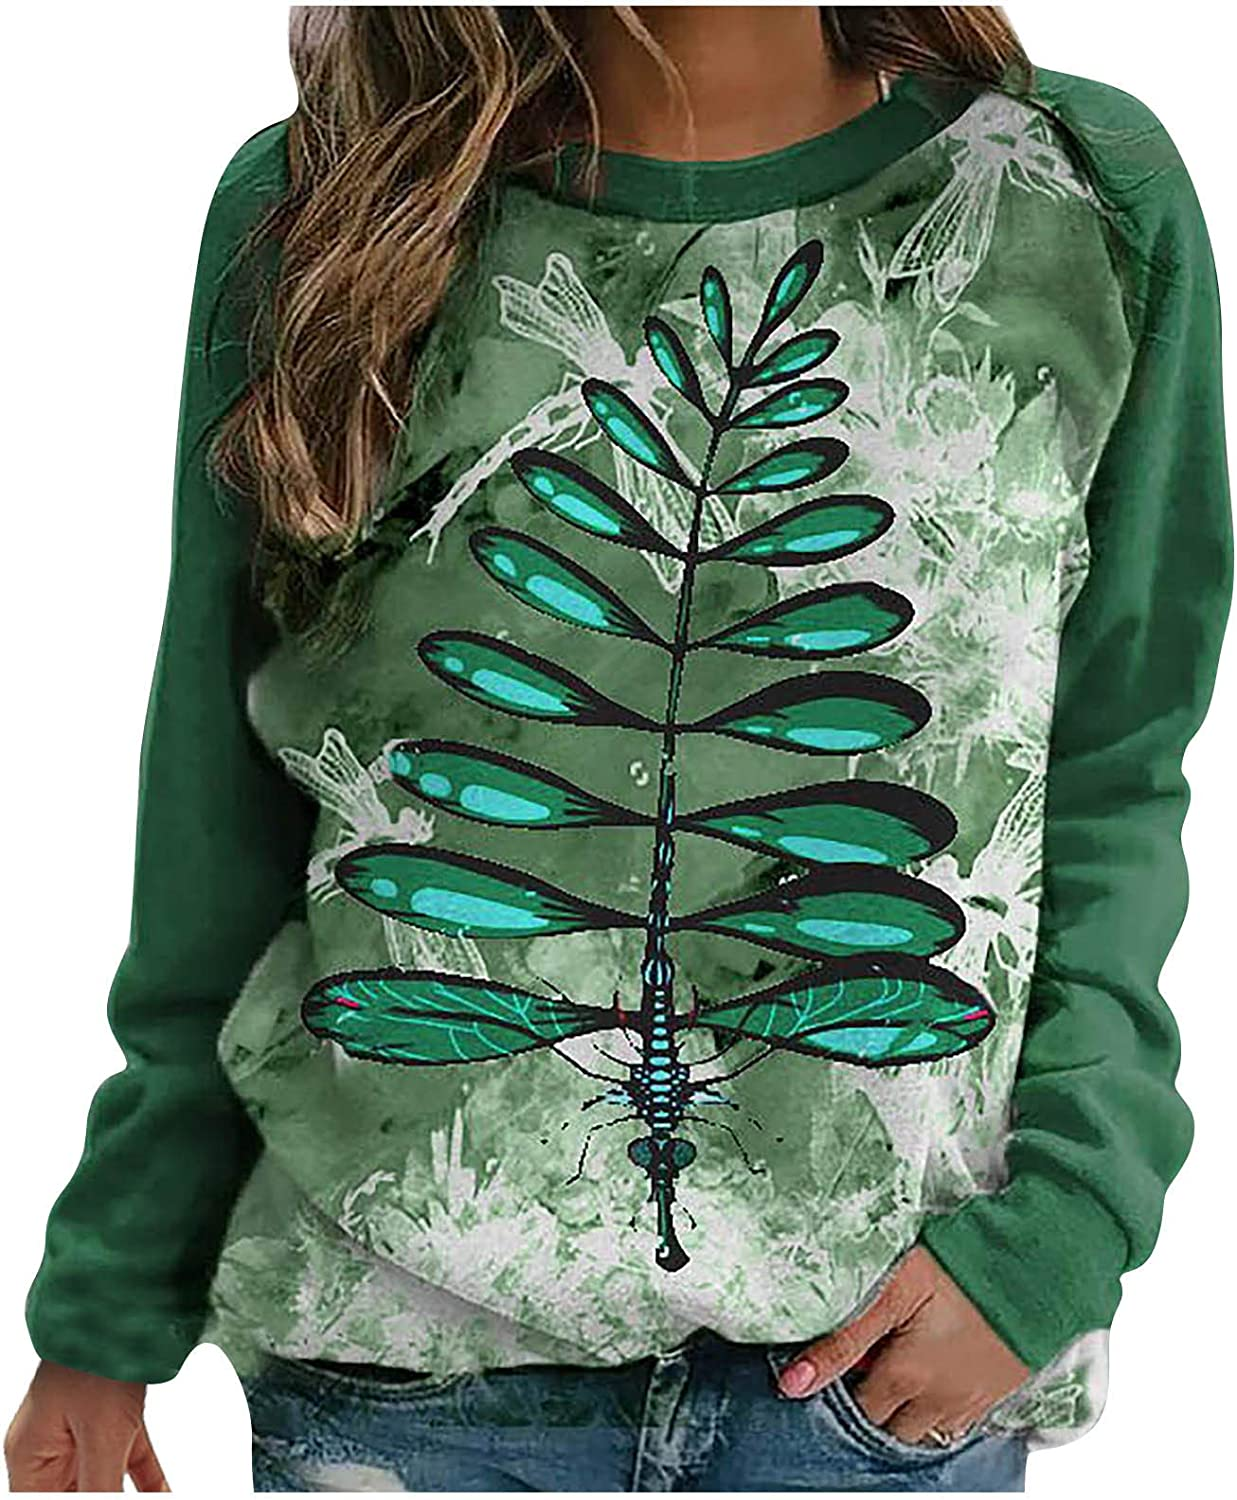 Eoailr Sweatshirt for Sale Women Letter Dragonfly Special price a limited time Womens Lightweight